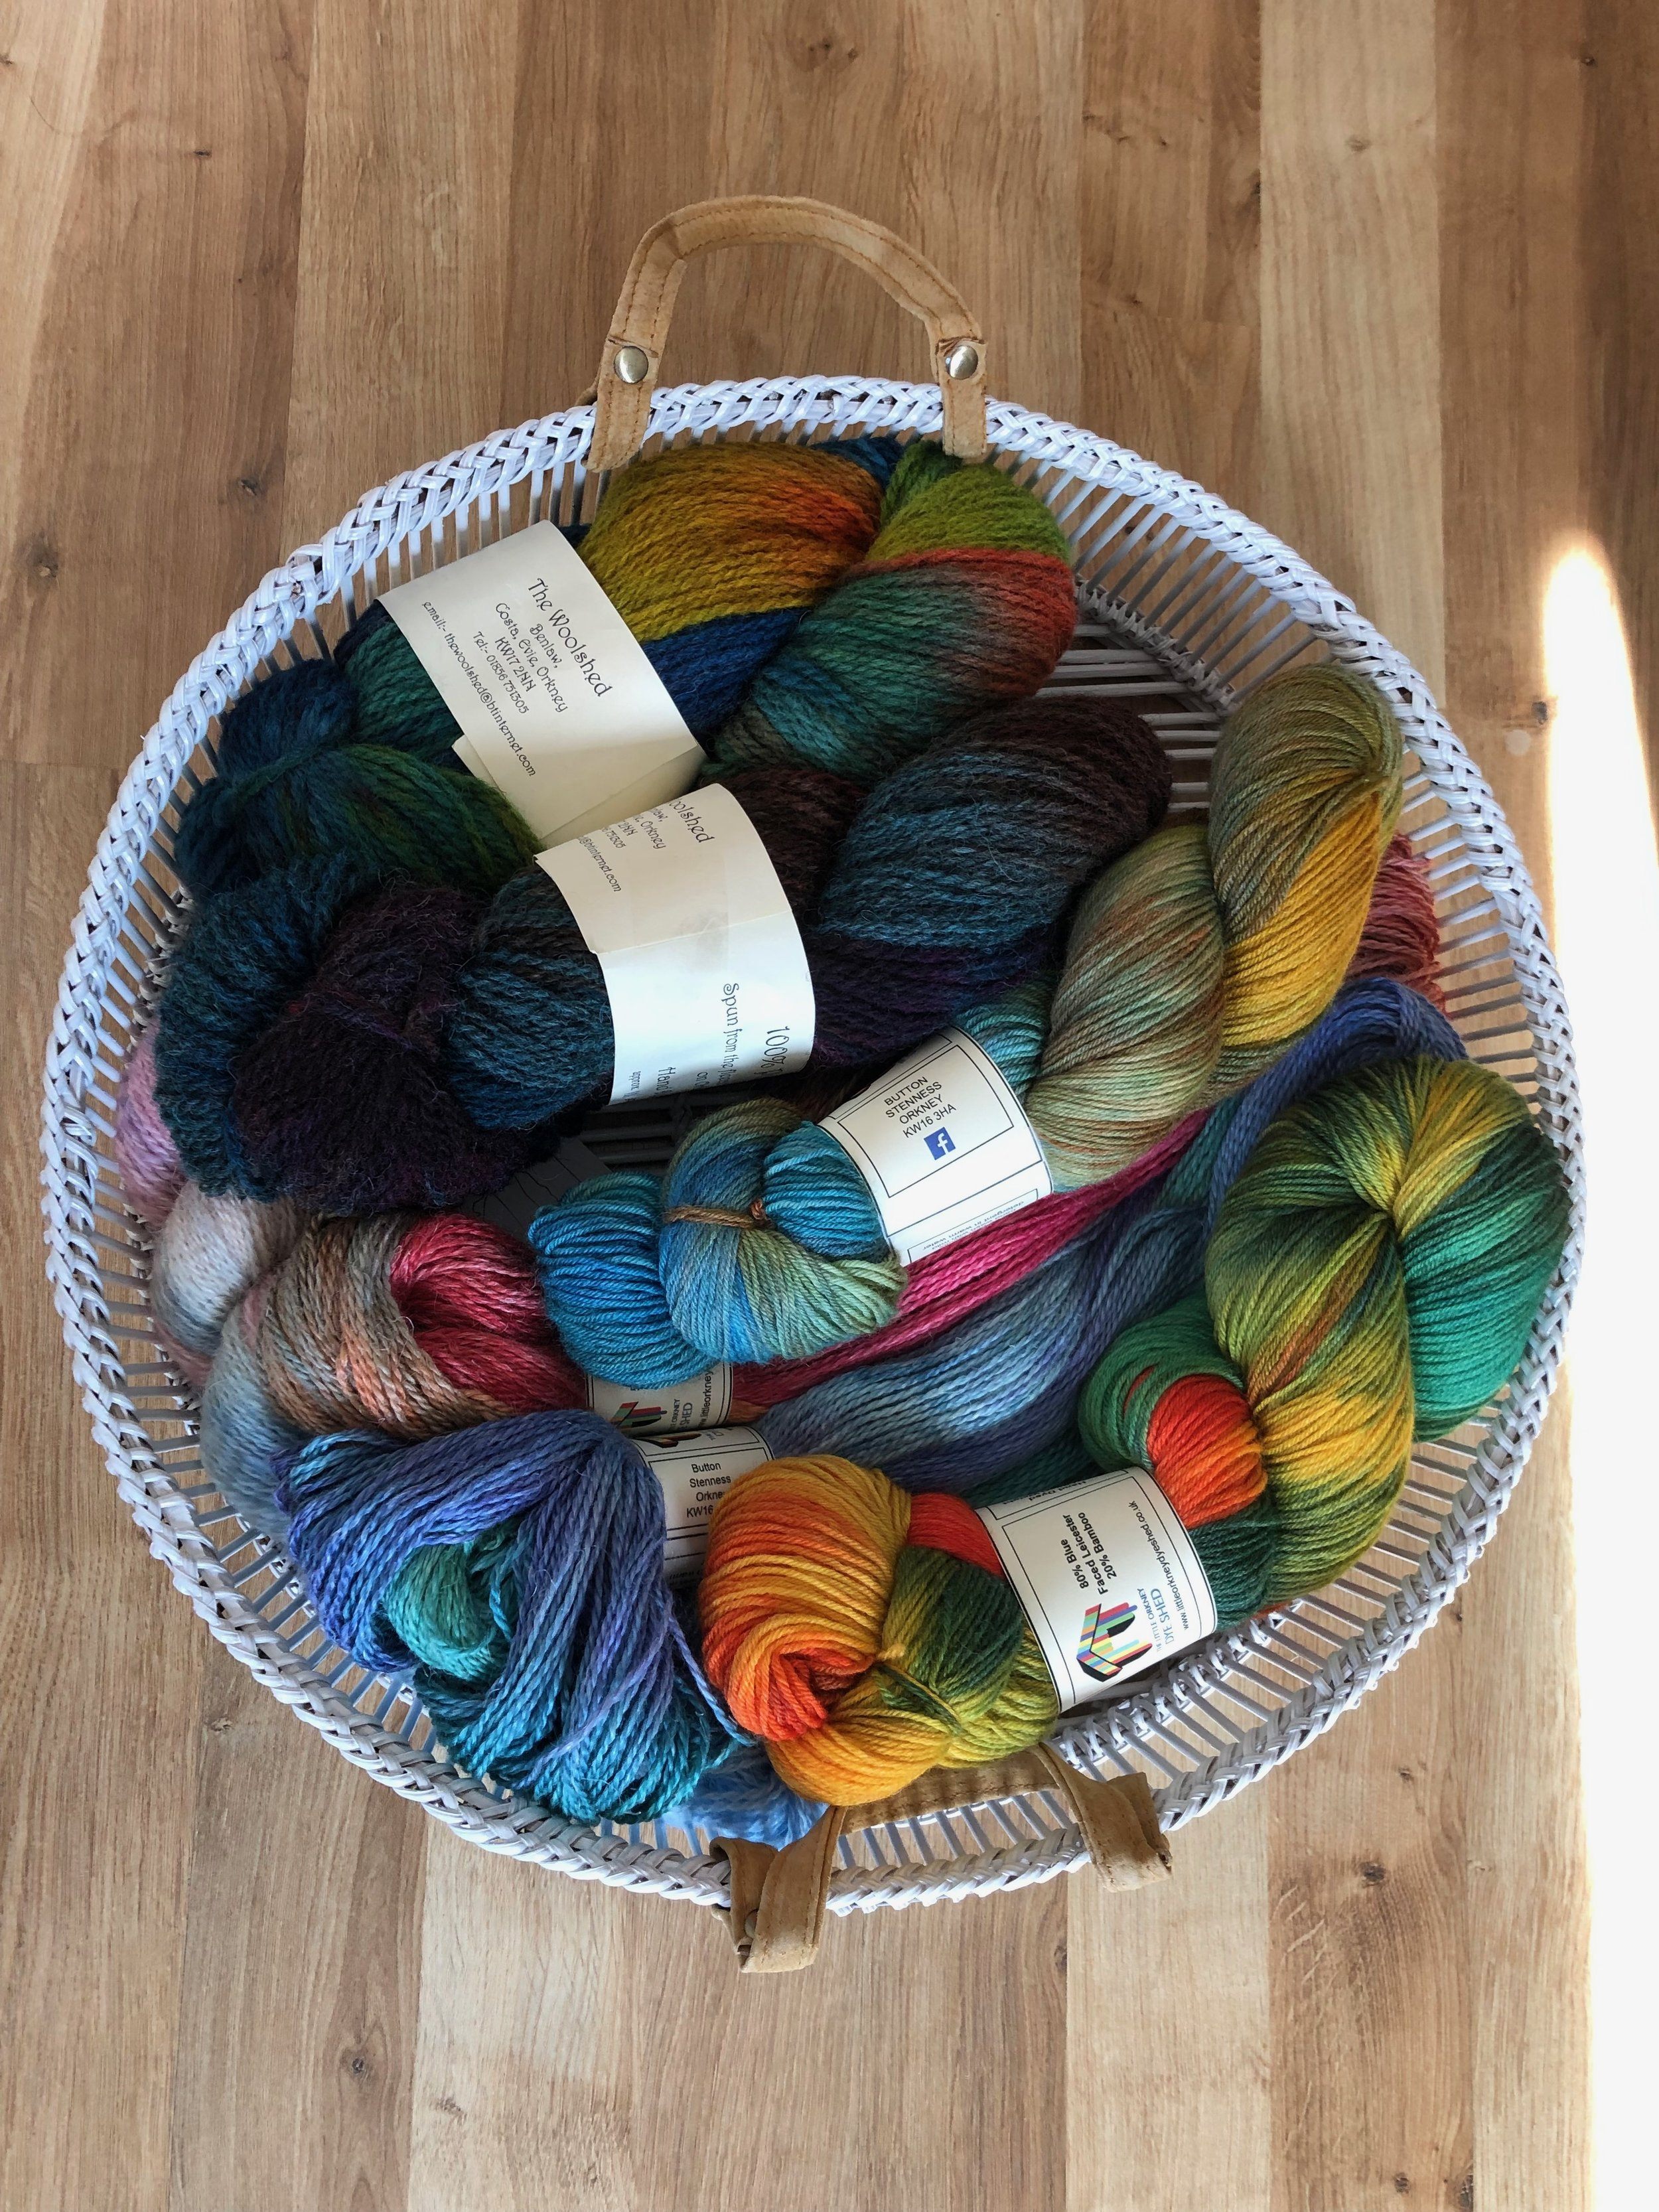 Wool buying in Orkney